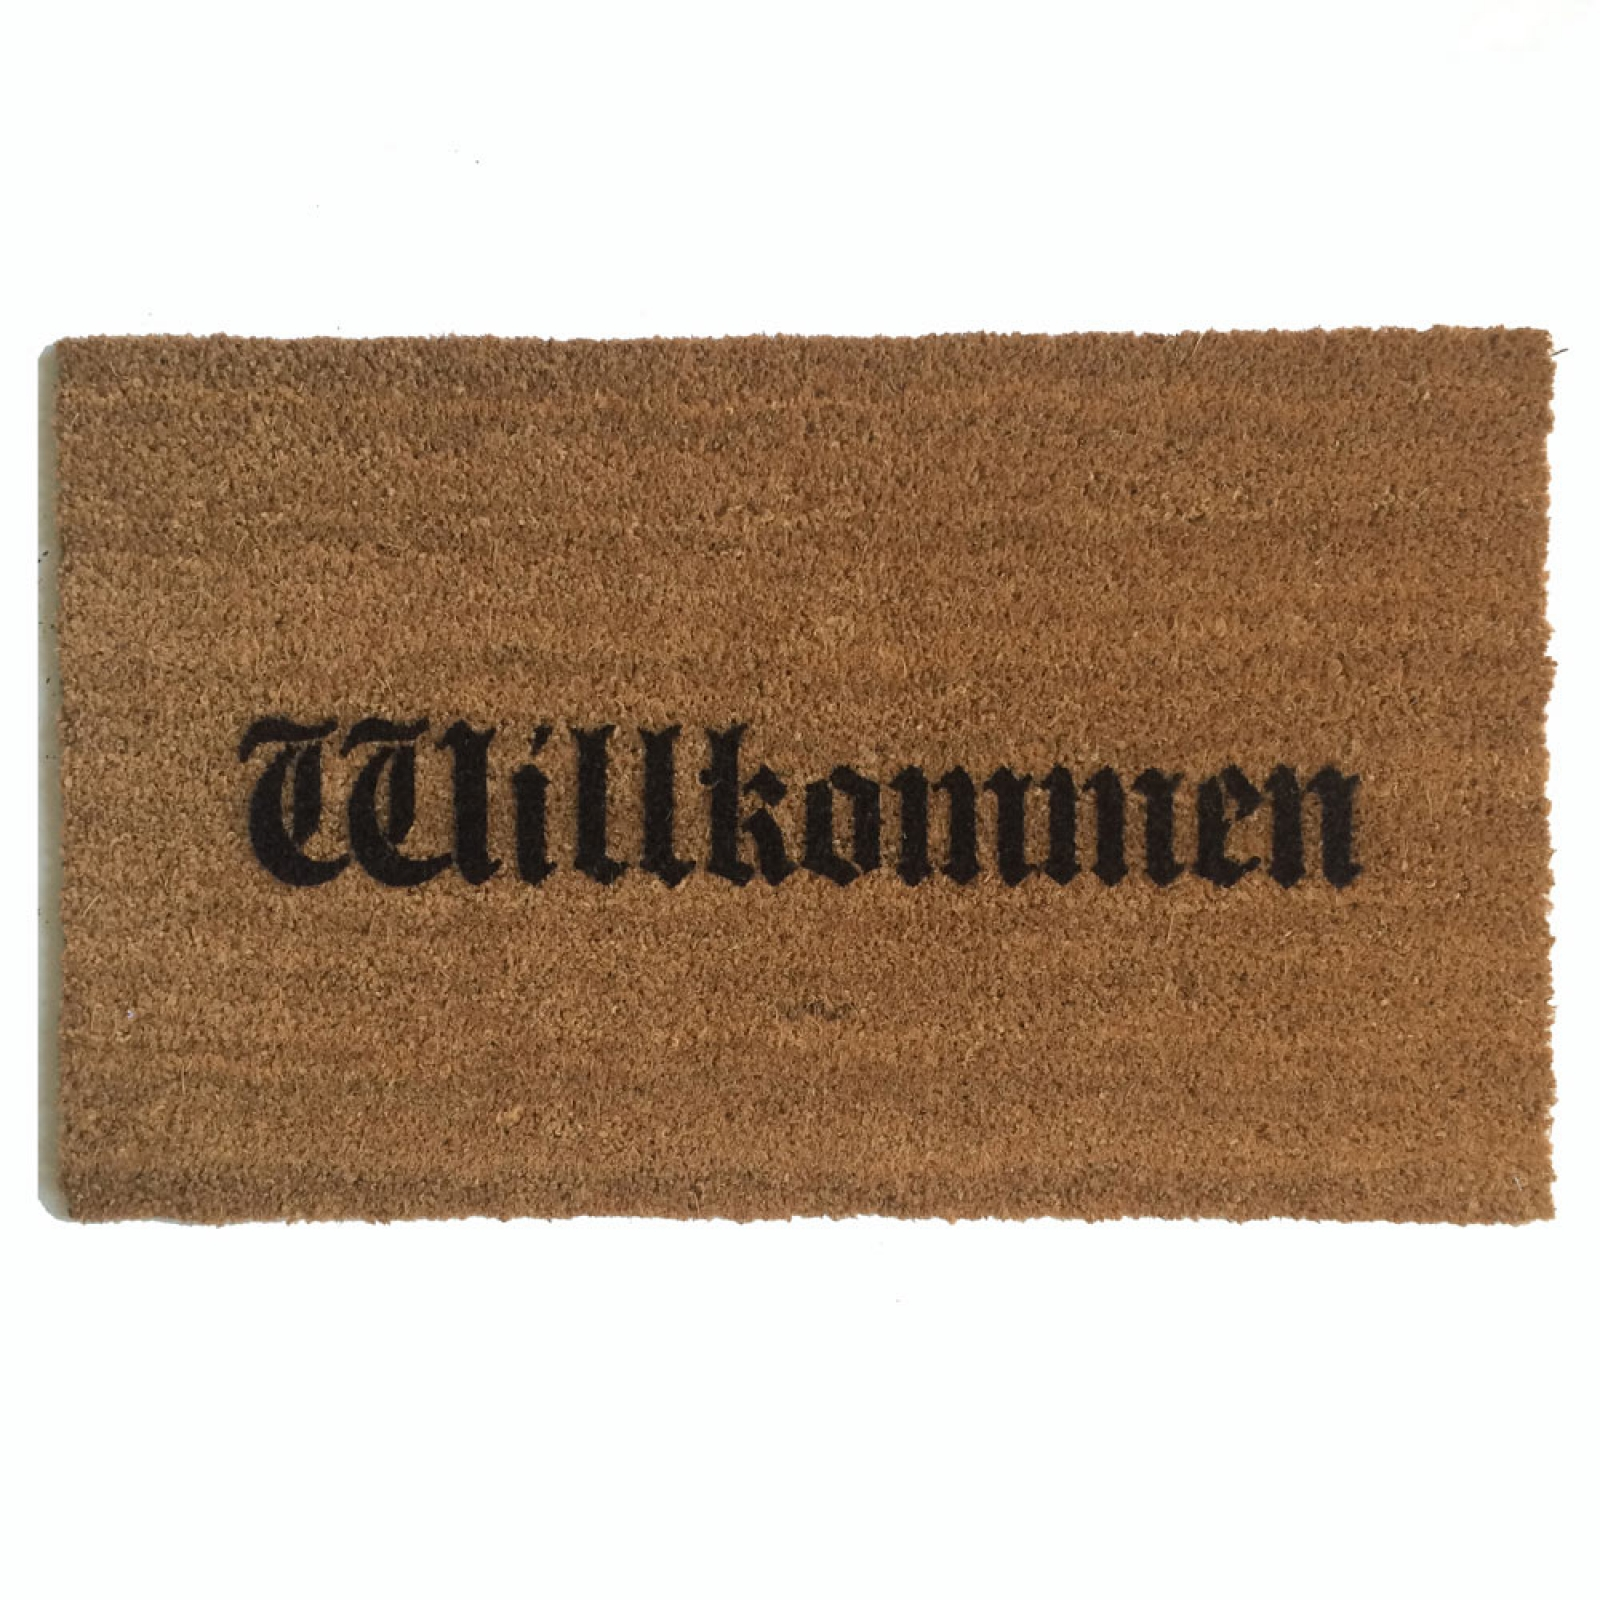 Willkommen Doormat Quot Welcome In Quot In German Damn Good Doormats